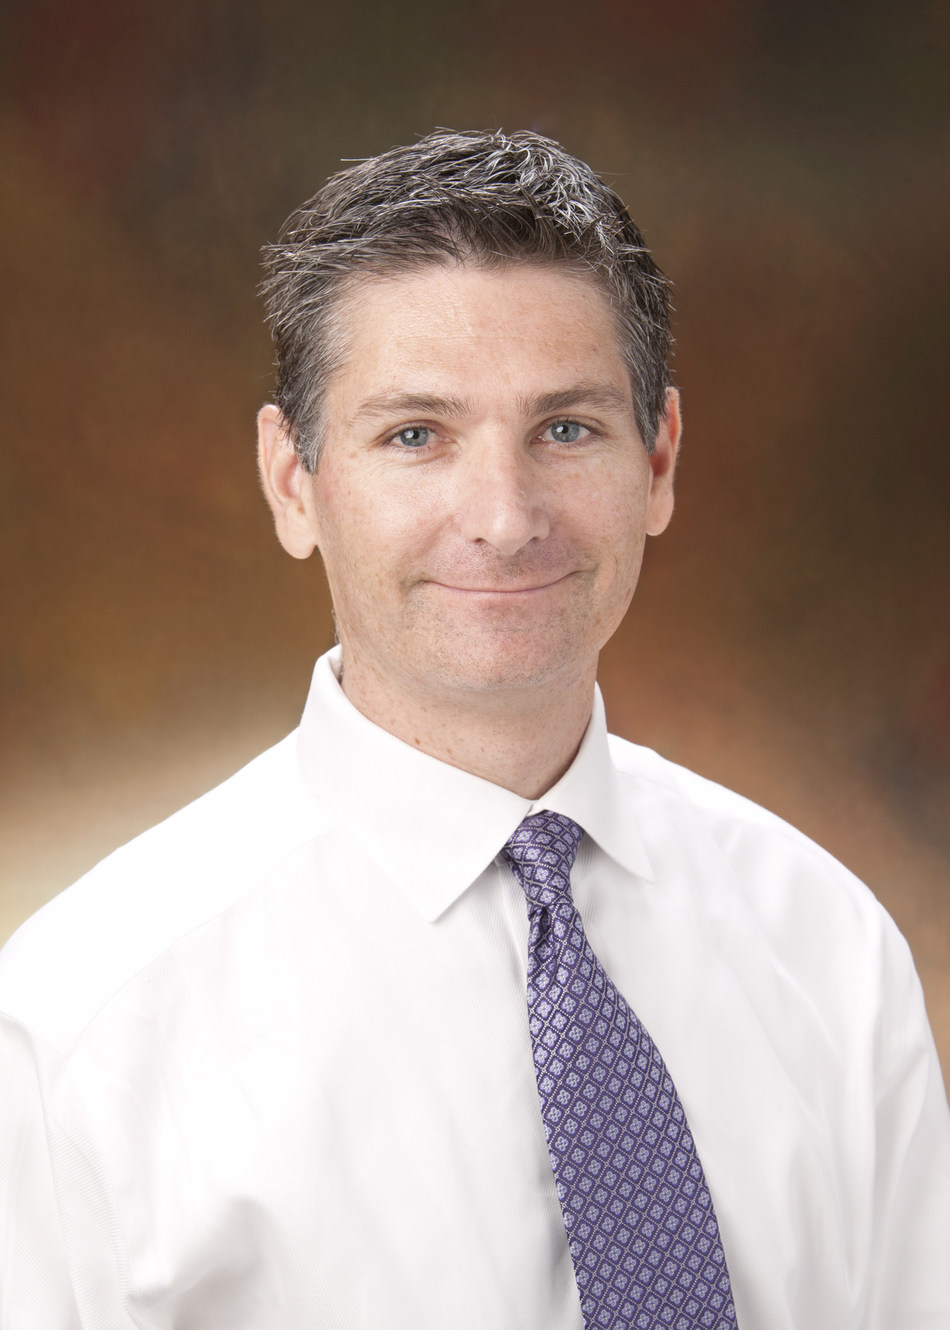 Joseph Rossano, M.D., has been named Chief of the Division of Cardiology at Children's Hospital of Philadelphia.